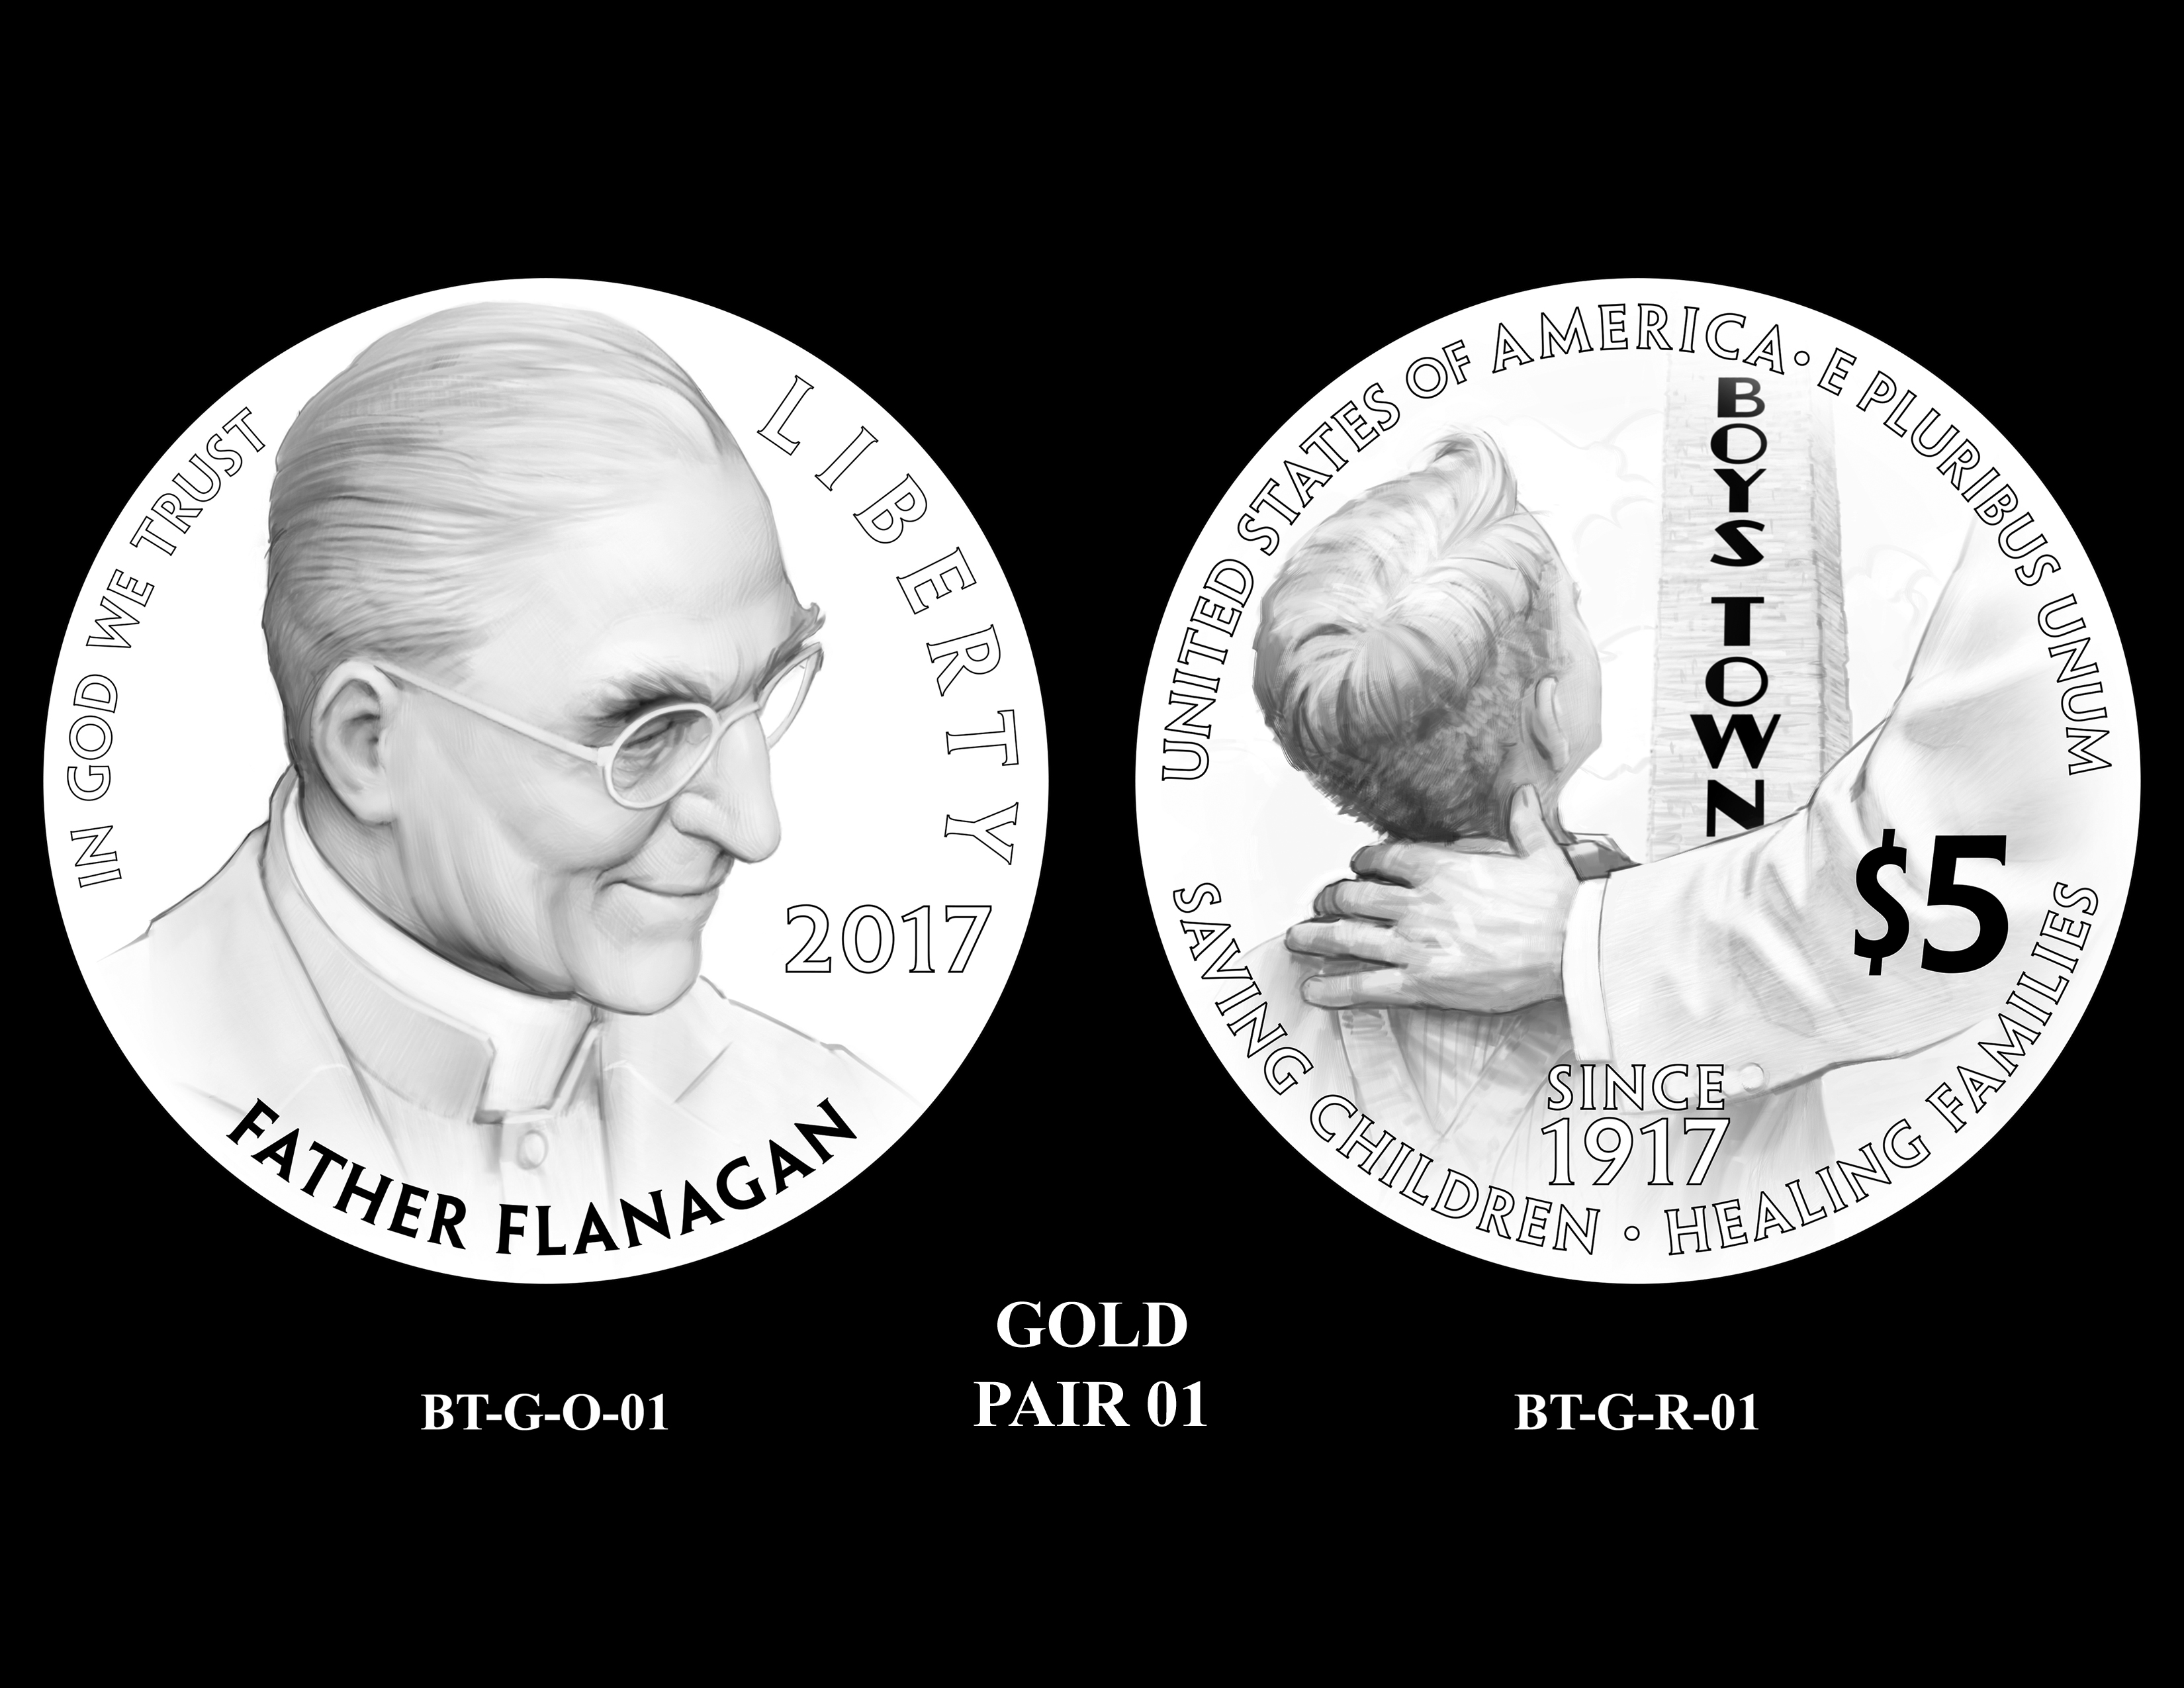 Gold-Pair-01 -- 2017 Boystown Centennial Commemorative Coin  Program